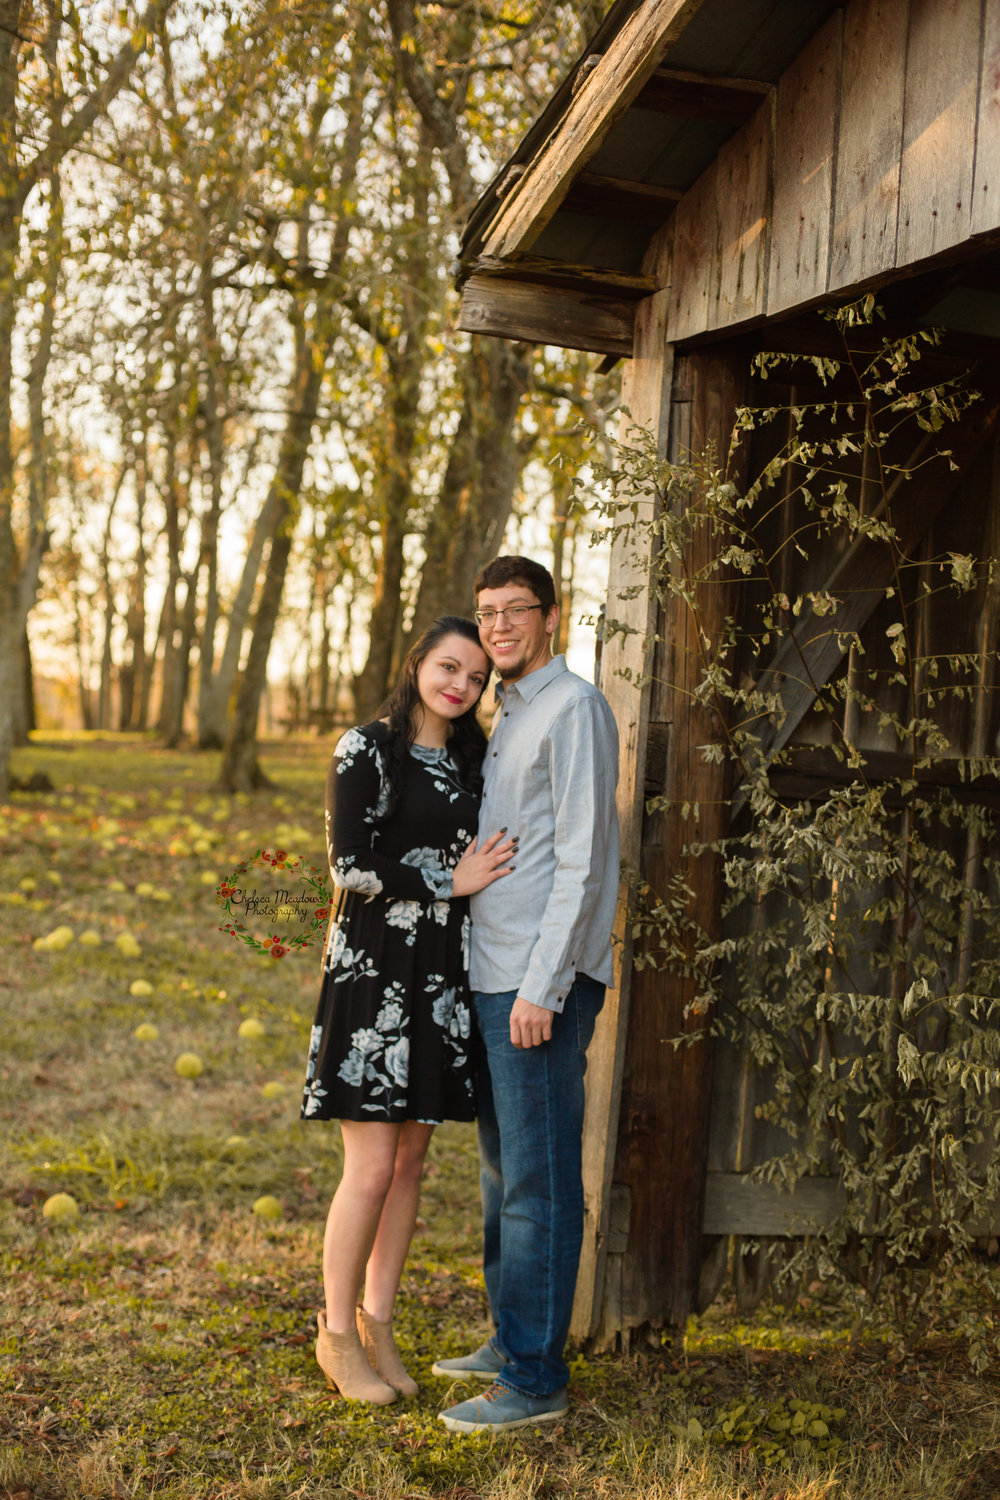 Jessica & Derek Engagement - Nashville Wedding Photographer - Chelsea Meadows Photography (43).jpg